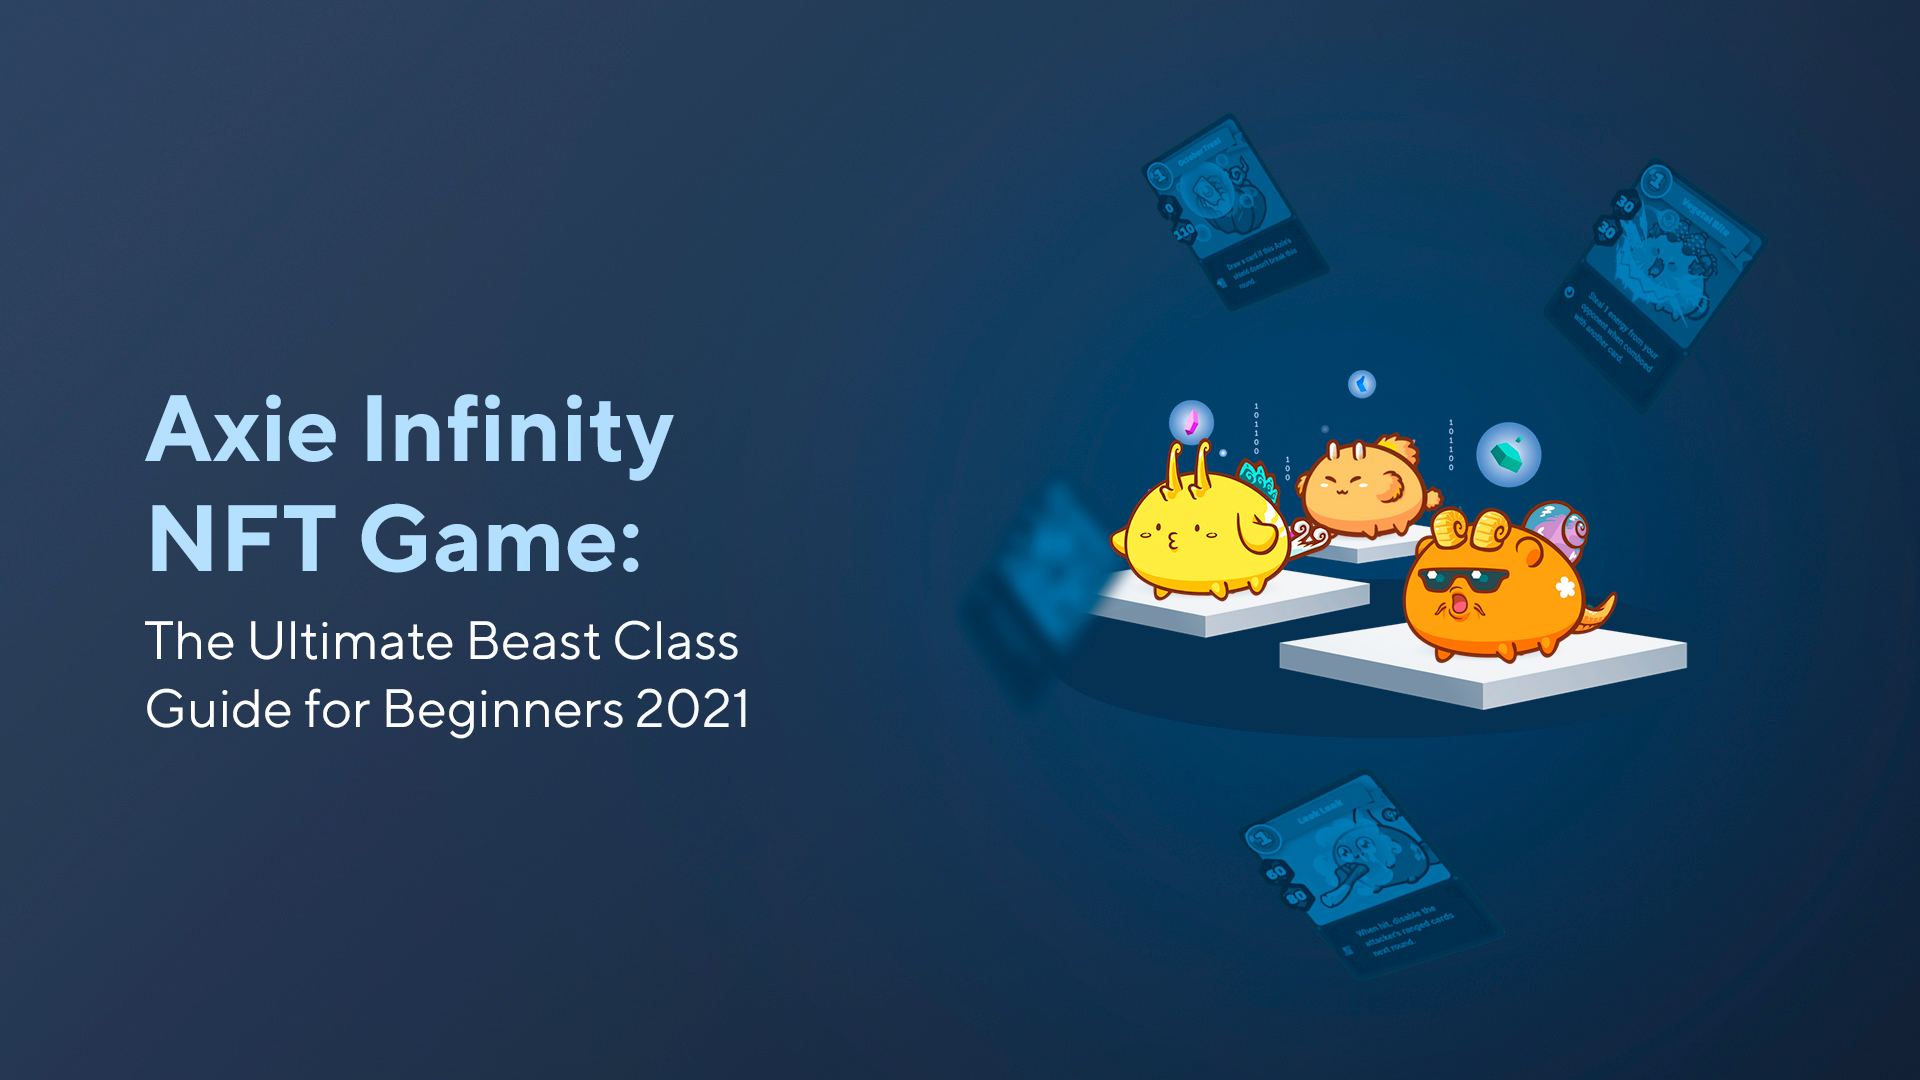 Axie Infinity NFT Game: The Ultimate Beast Class Guide for Beginners 2021